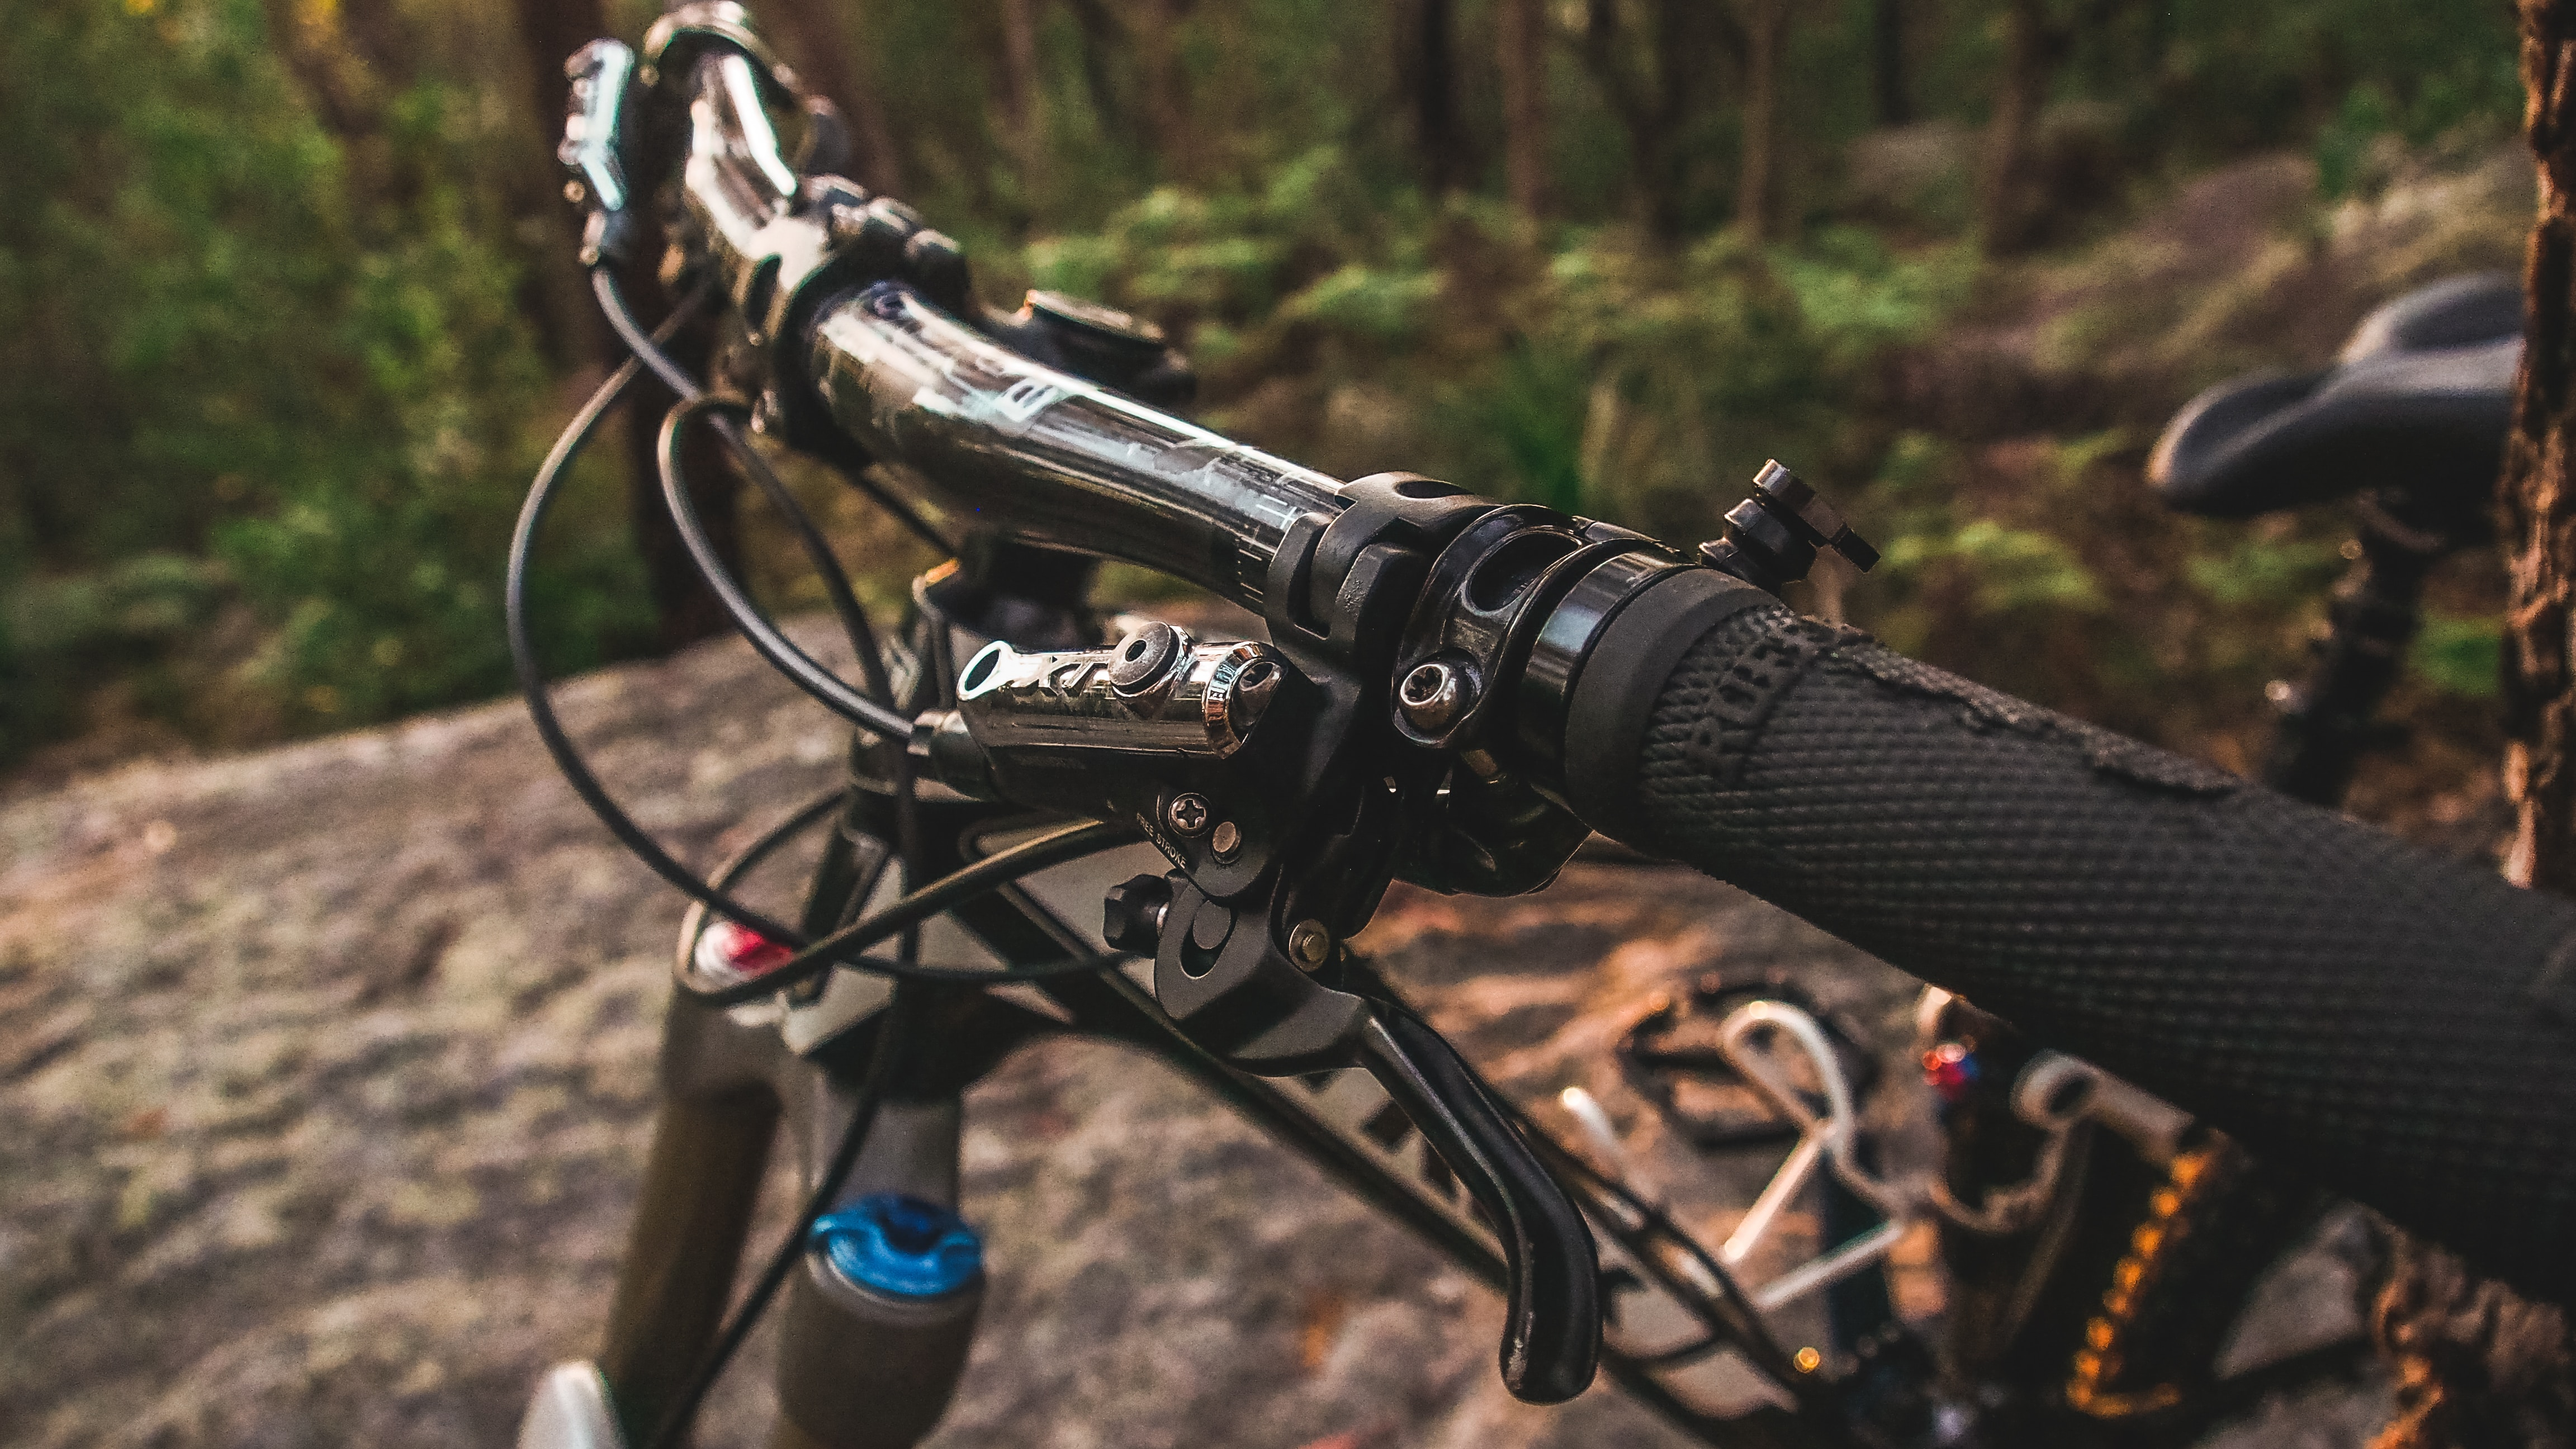 Nova Scotia Mountain Bike Trails | Bike Shop Nova Scotia